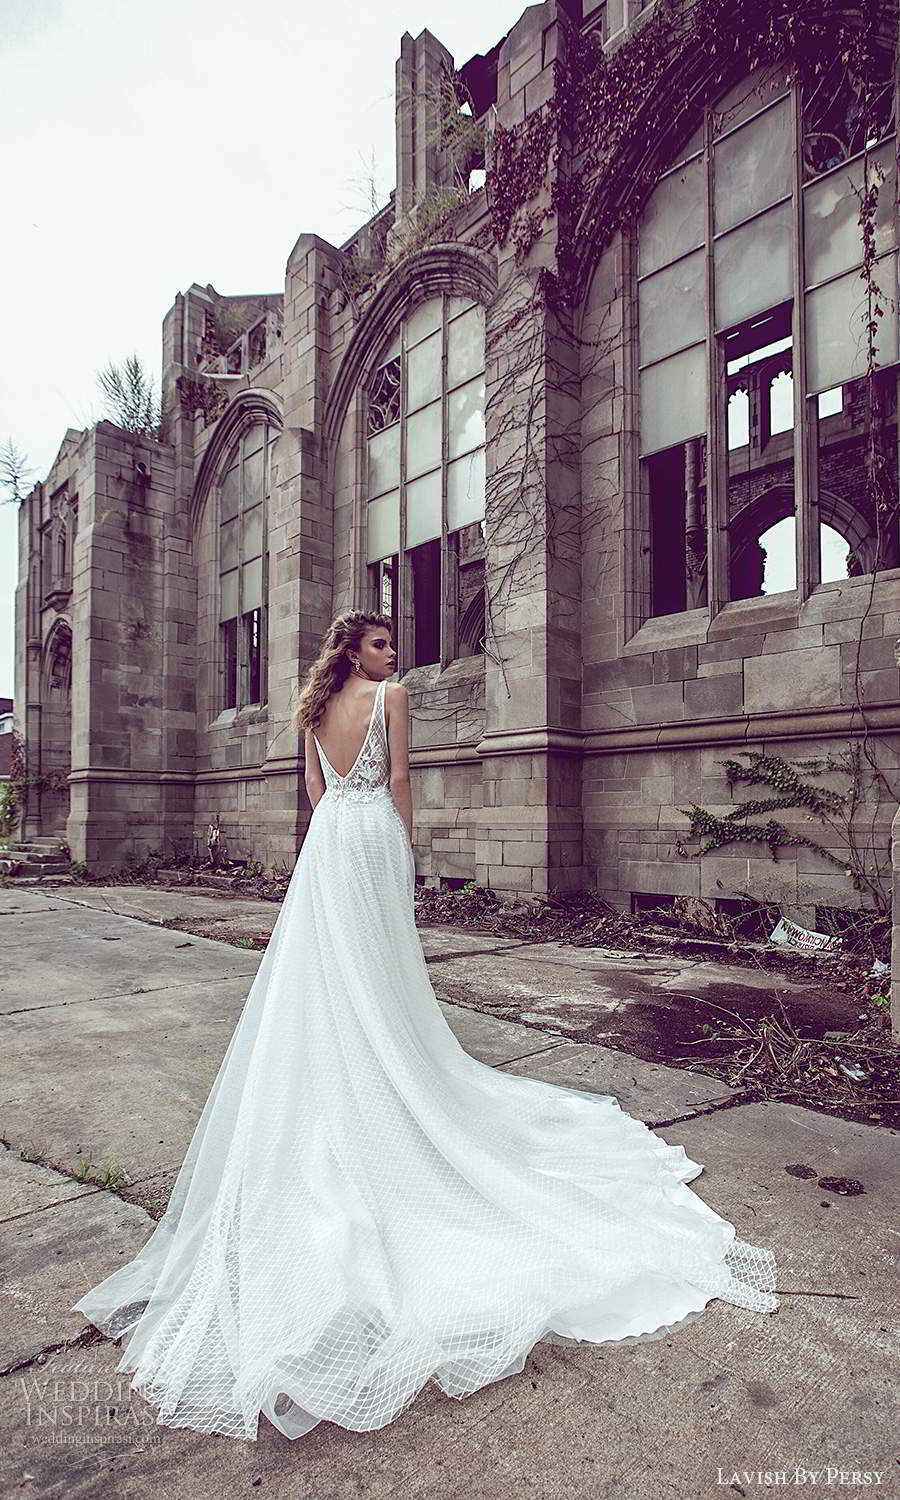 lavish by persy fall 2020 bridal sleeveless thick straps plunging v neckline fully embellished a line ball gown wedding dress chapel train v back (6) bv